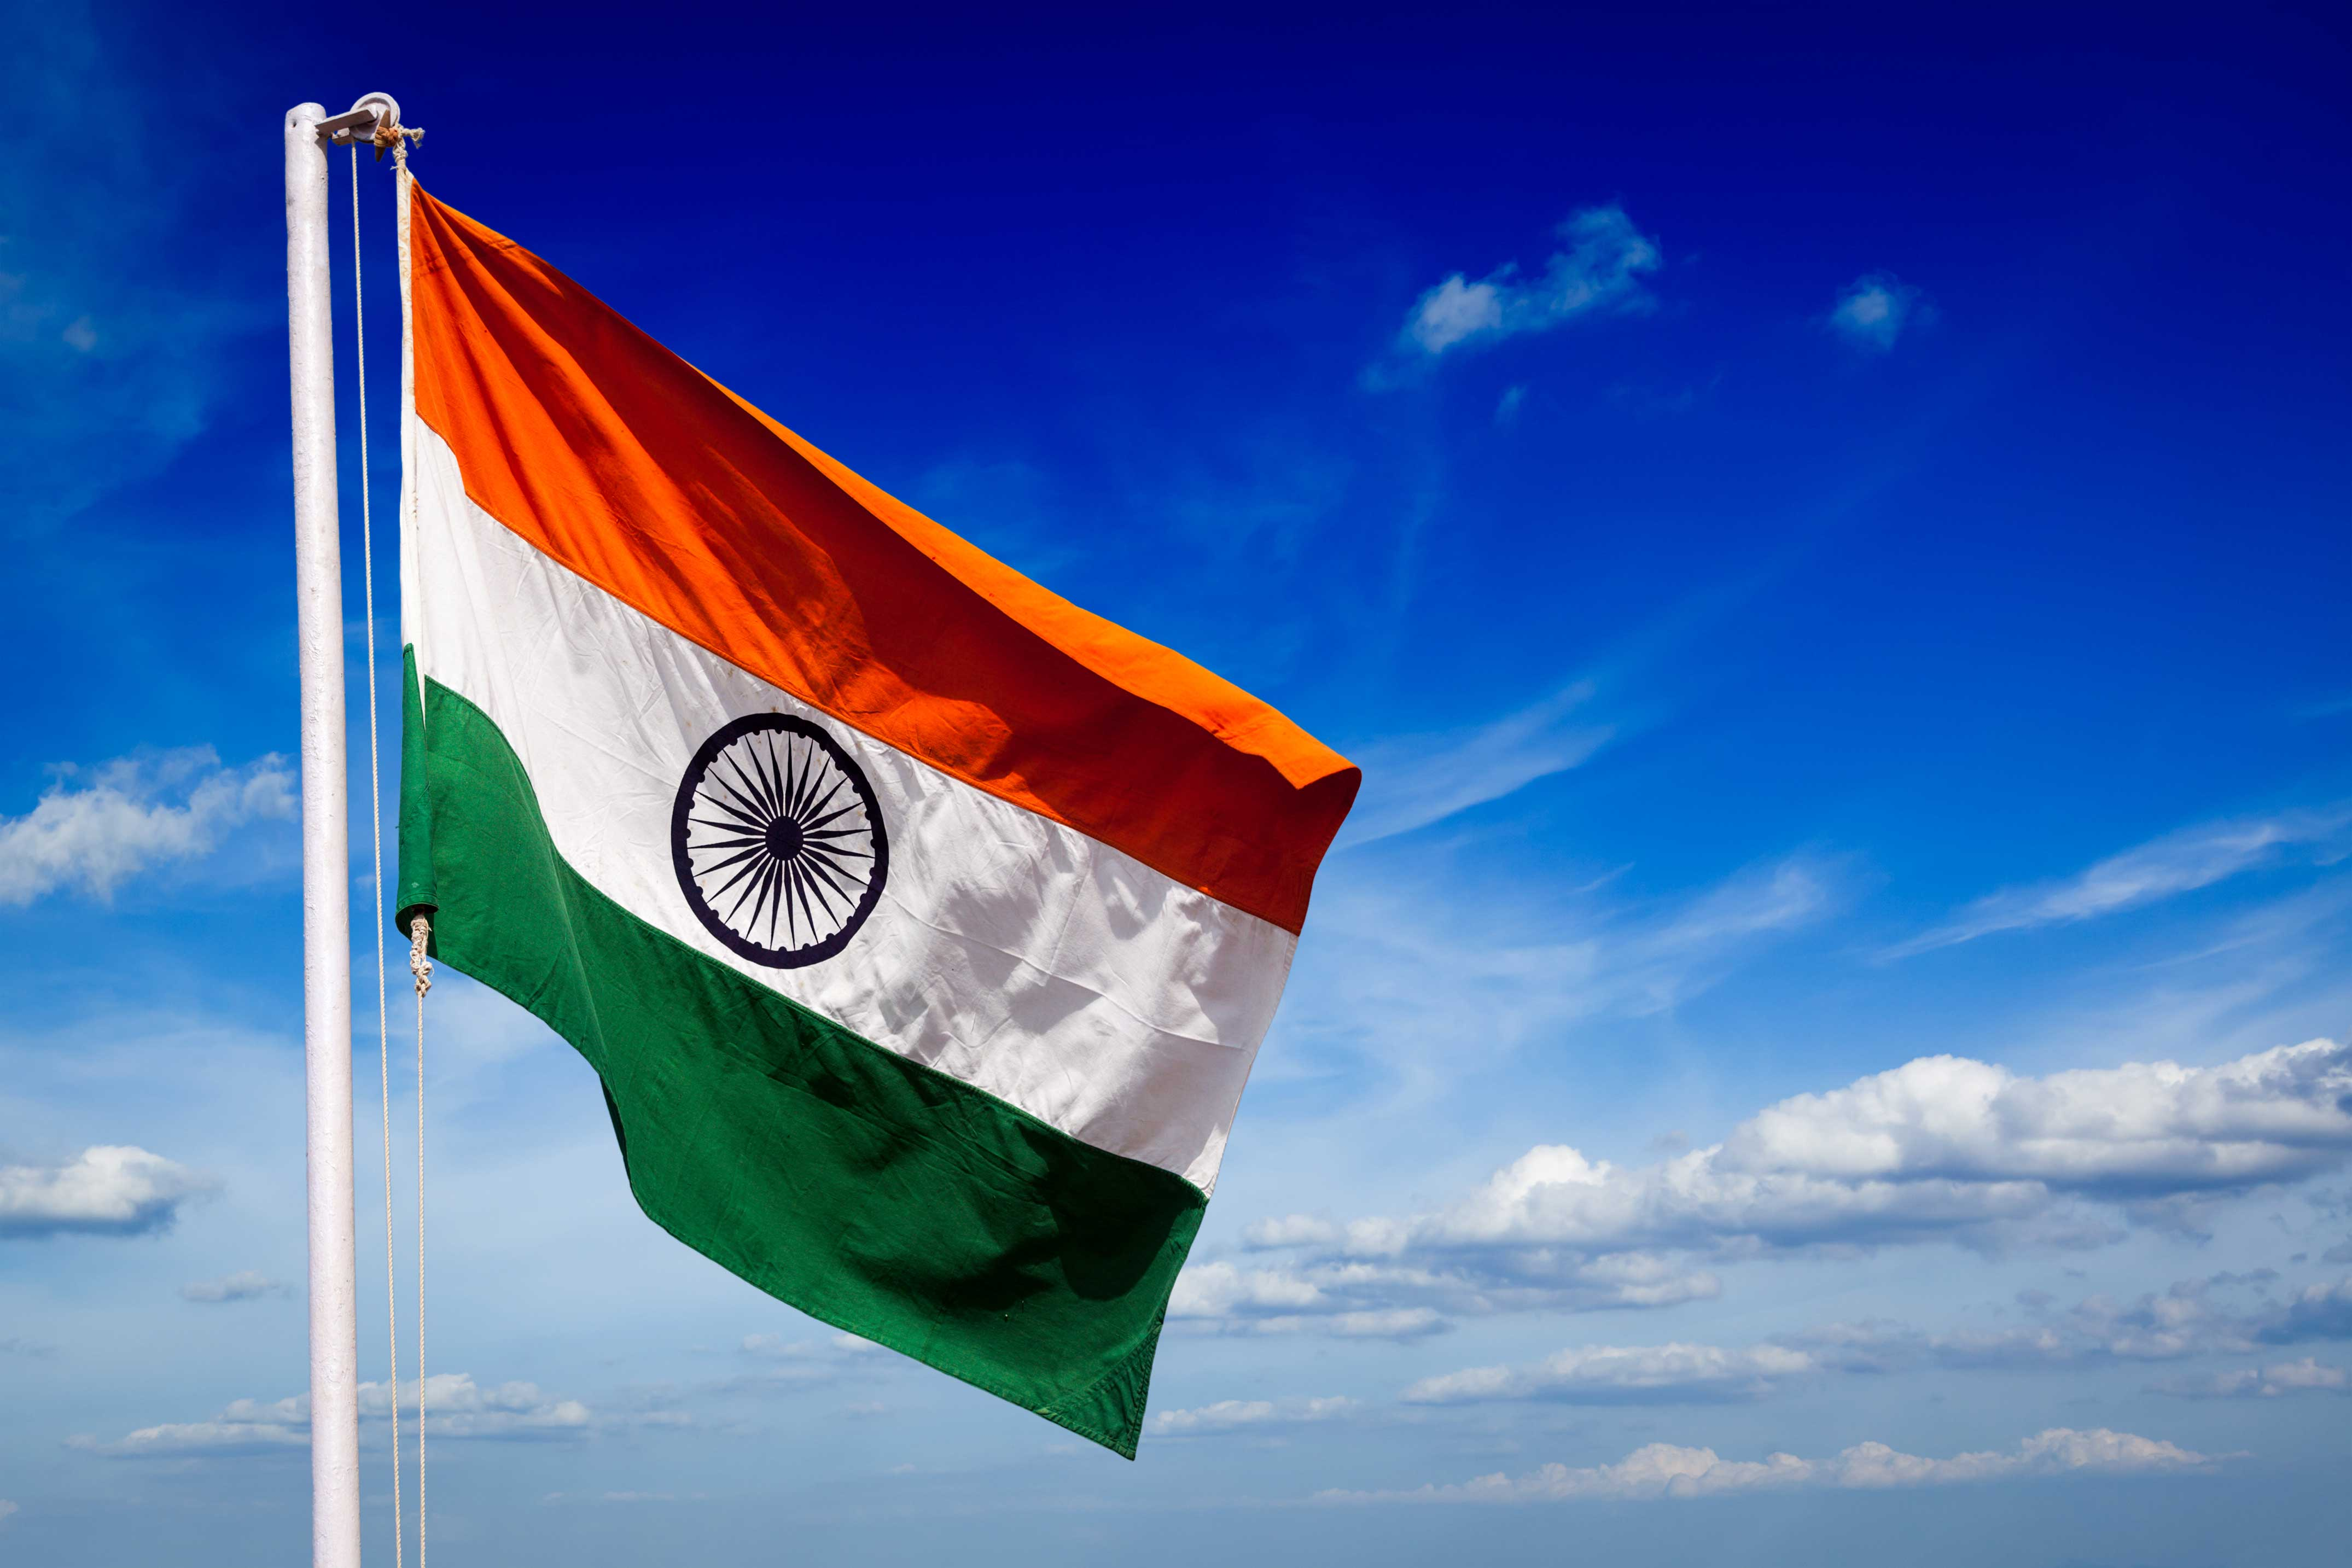 What Is The Actual Meaning Of The Indian Flag Or The 'Tiranga'